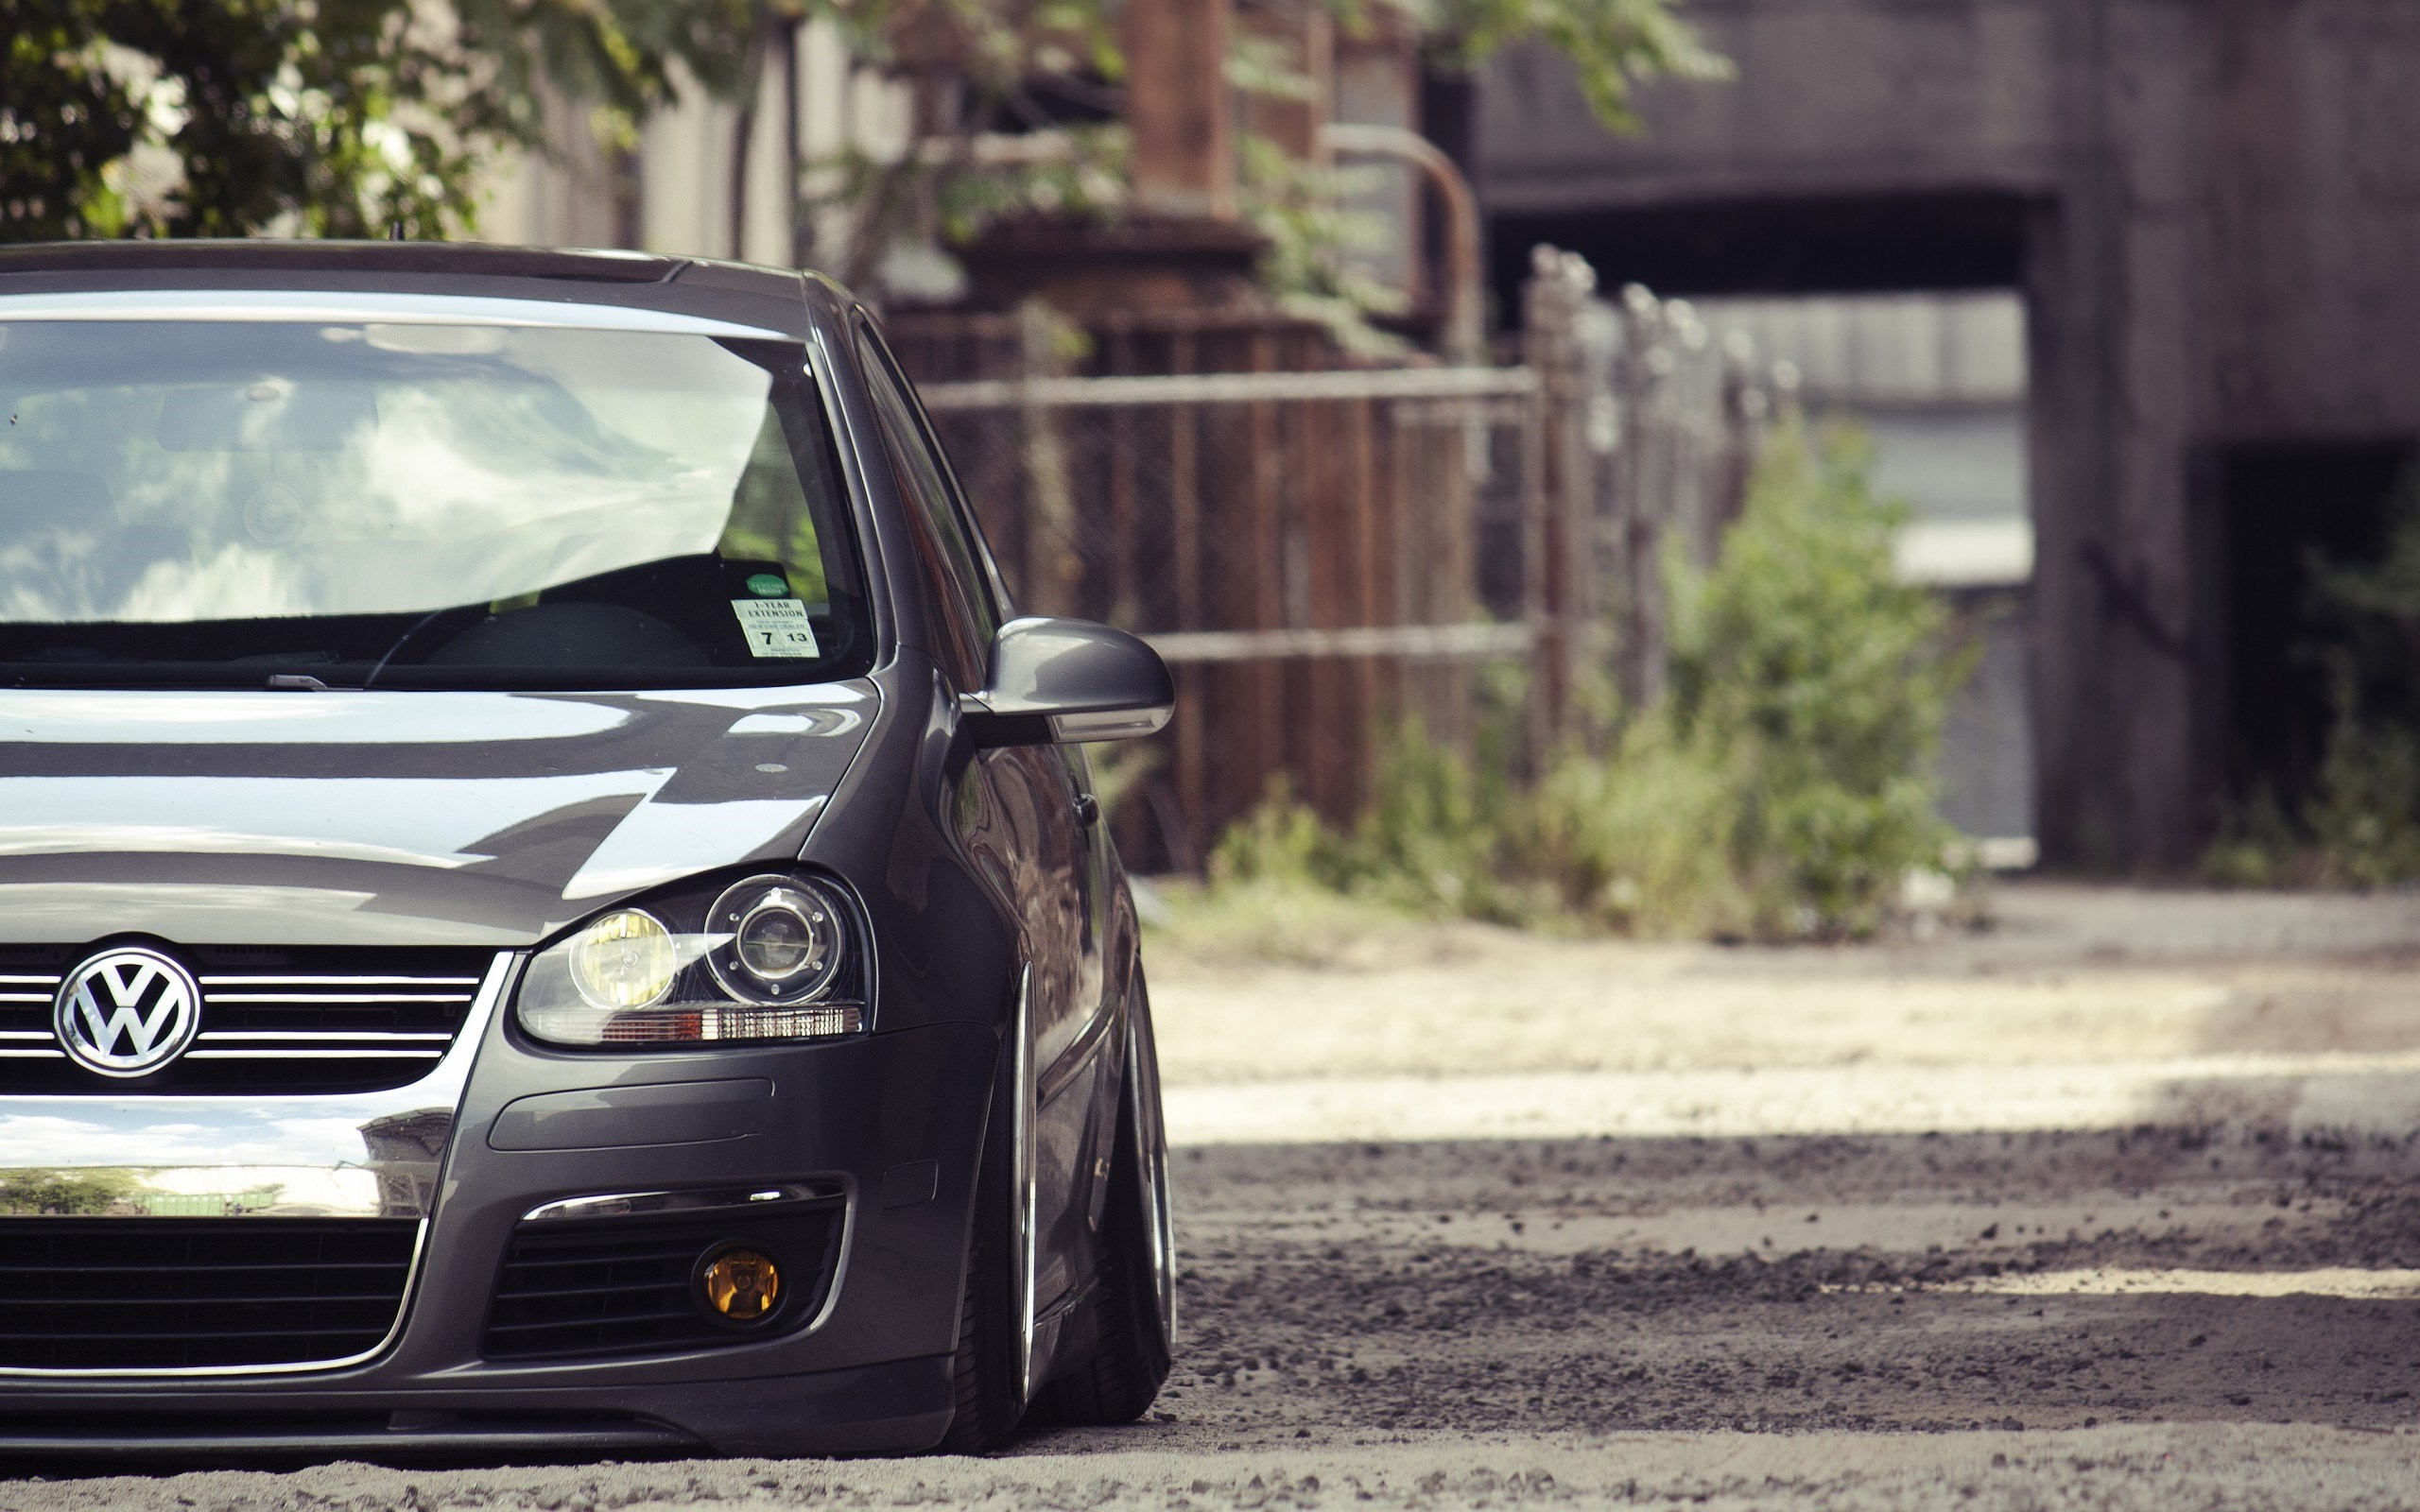 Volkswagen Golf Full HD Wallpaper And Background Image